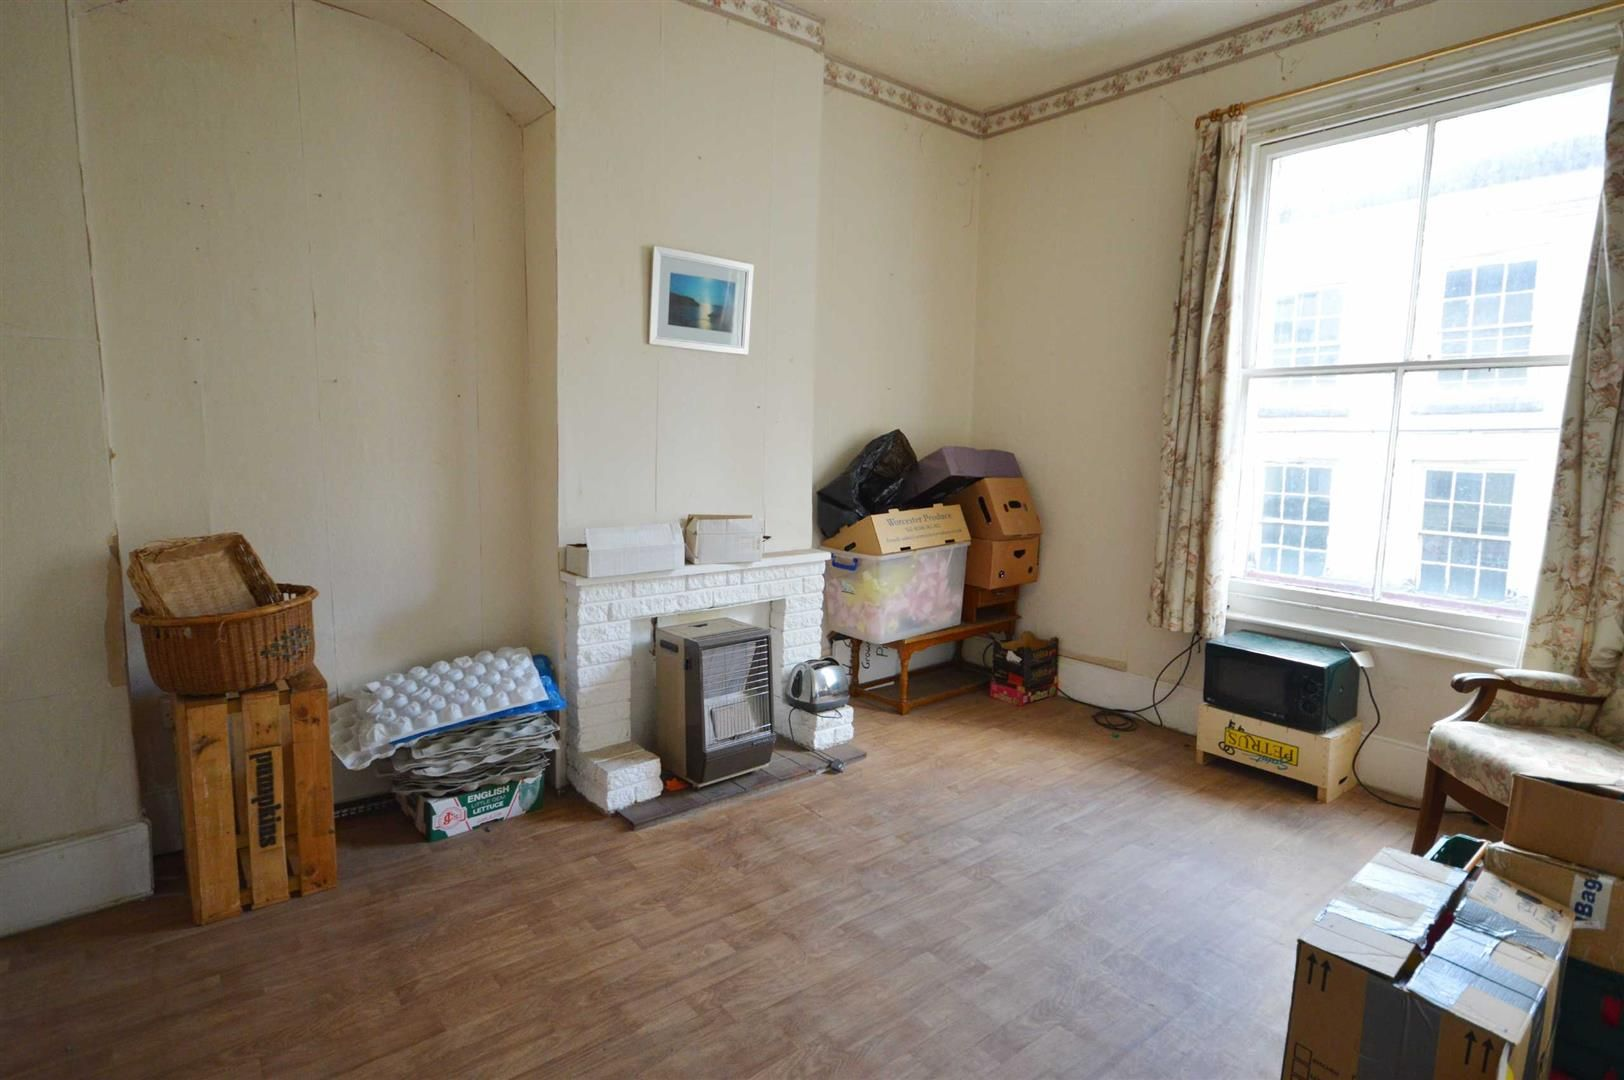 3 bed  for sale in Leominster  - Property Image 4